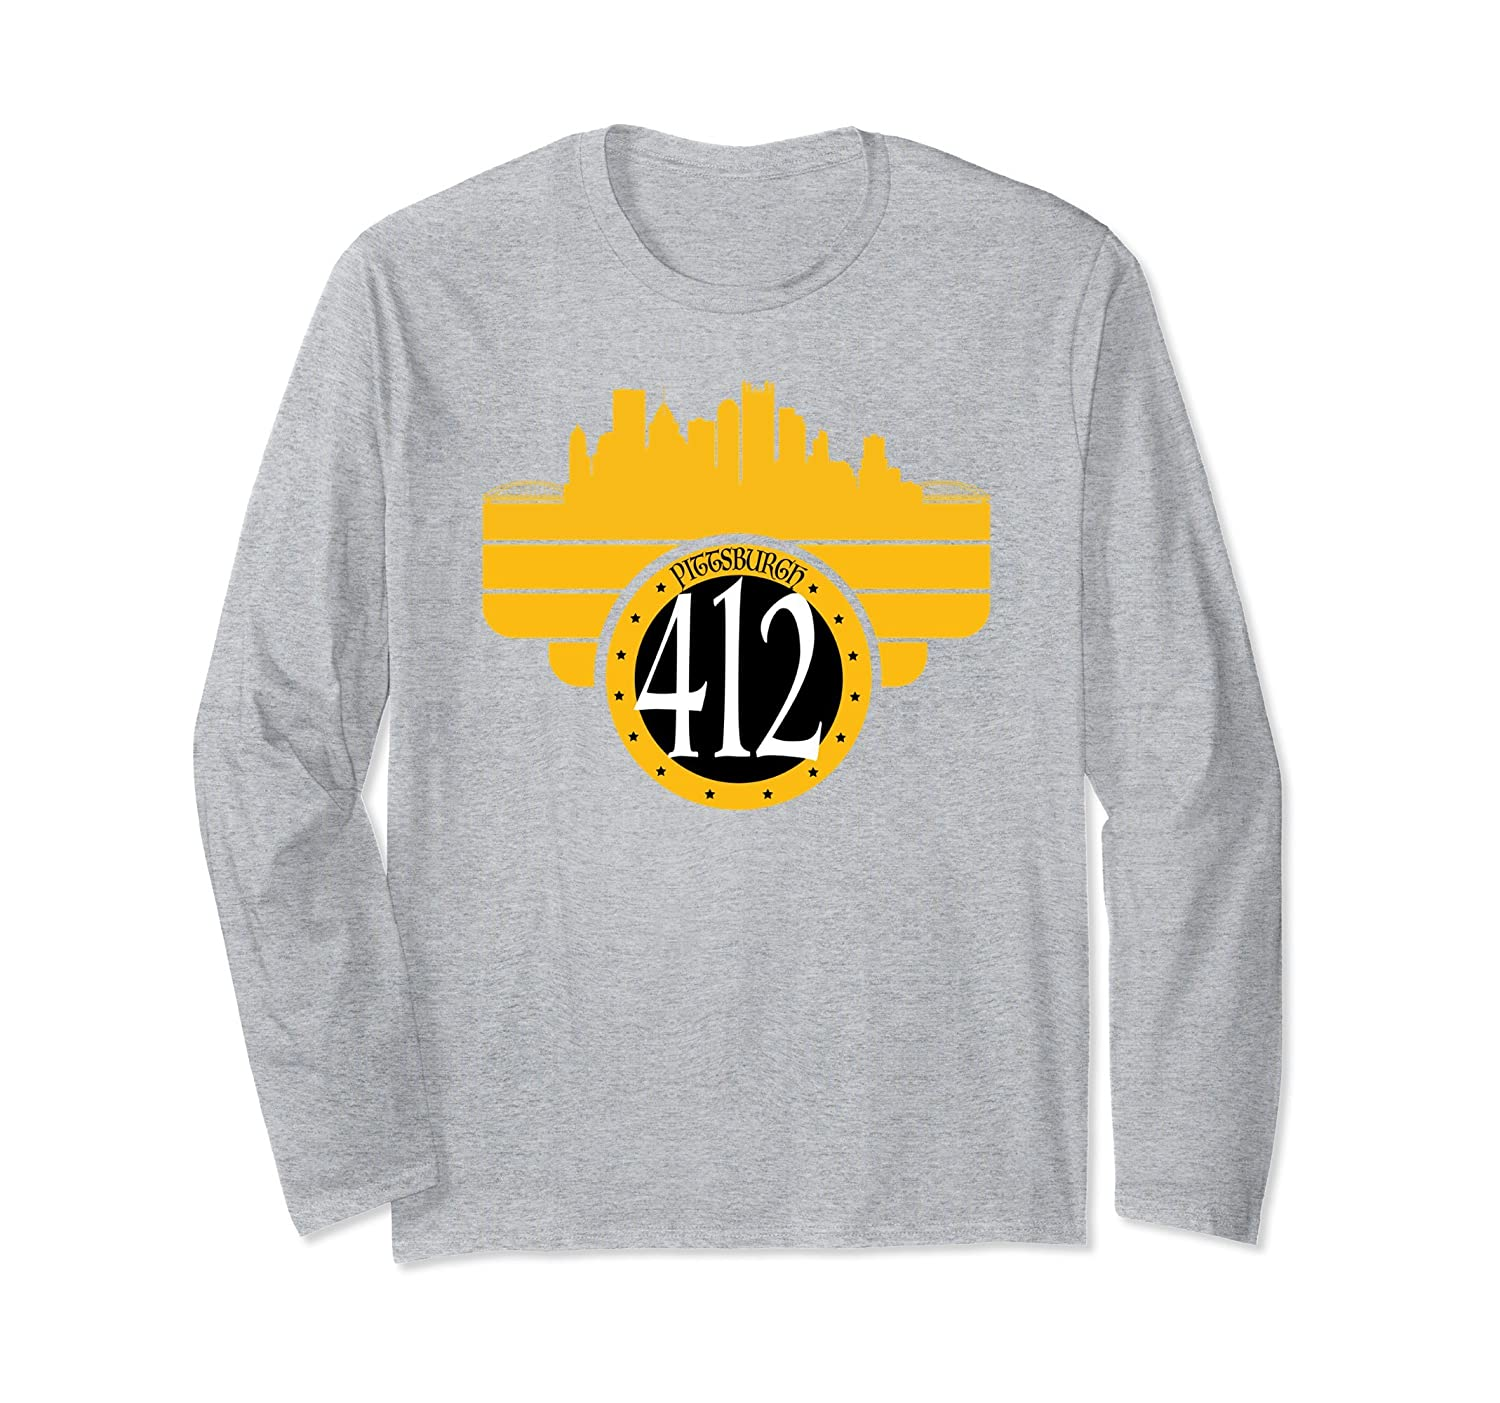 412 Pittsburgh PA Area Code Long Sleeve Pittsburgh Pride-TH